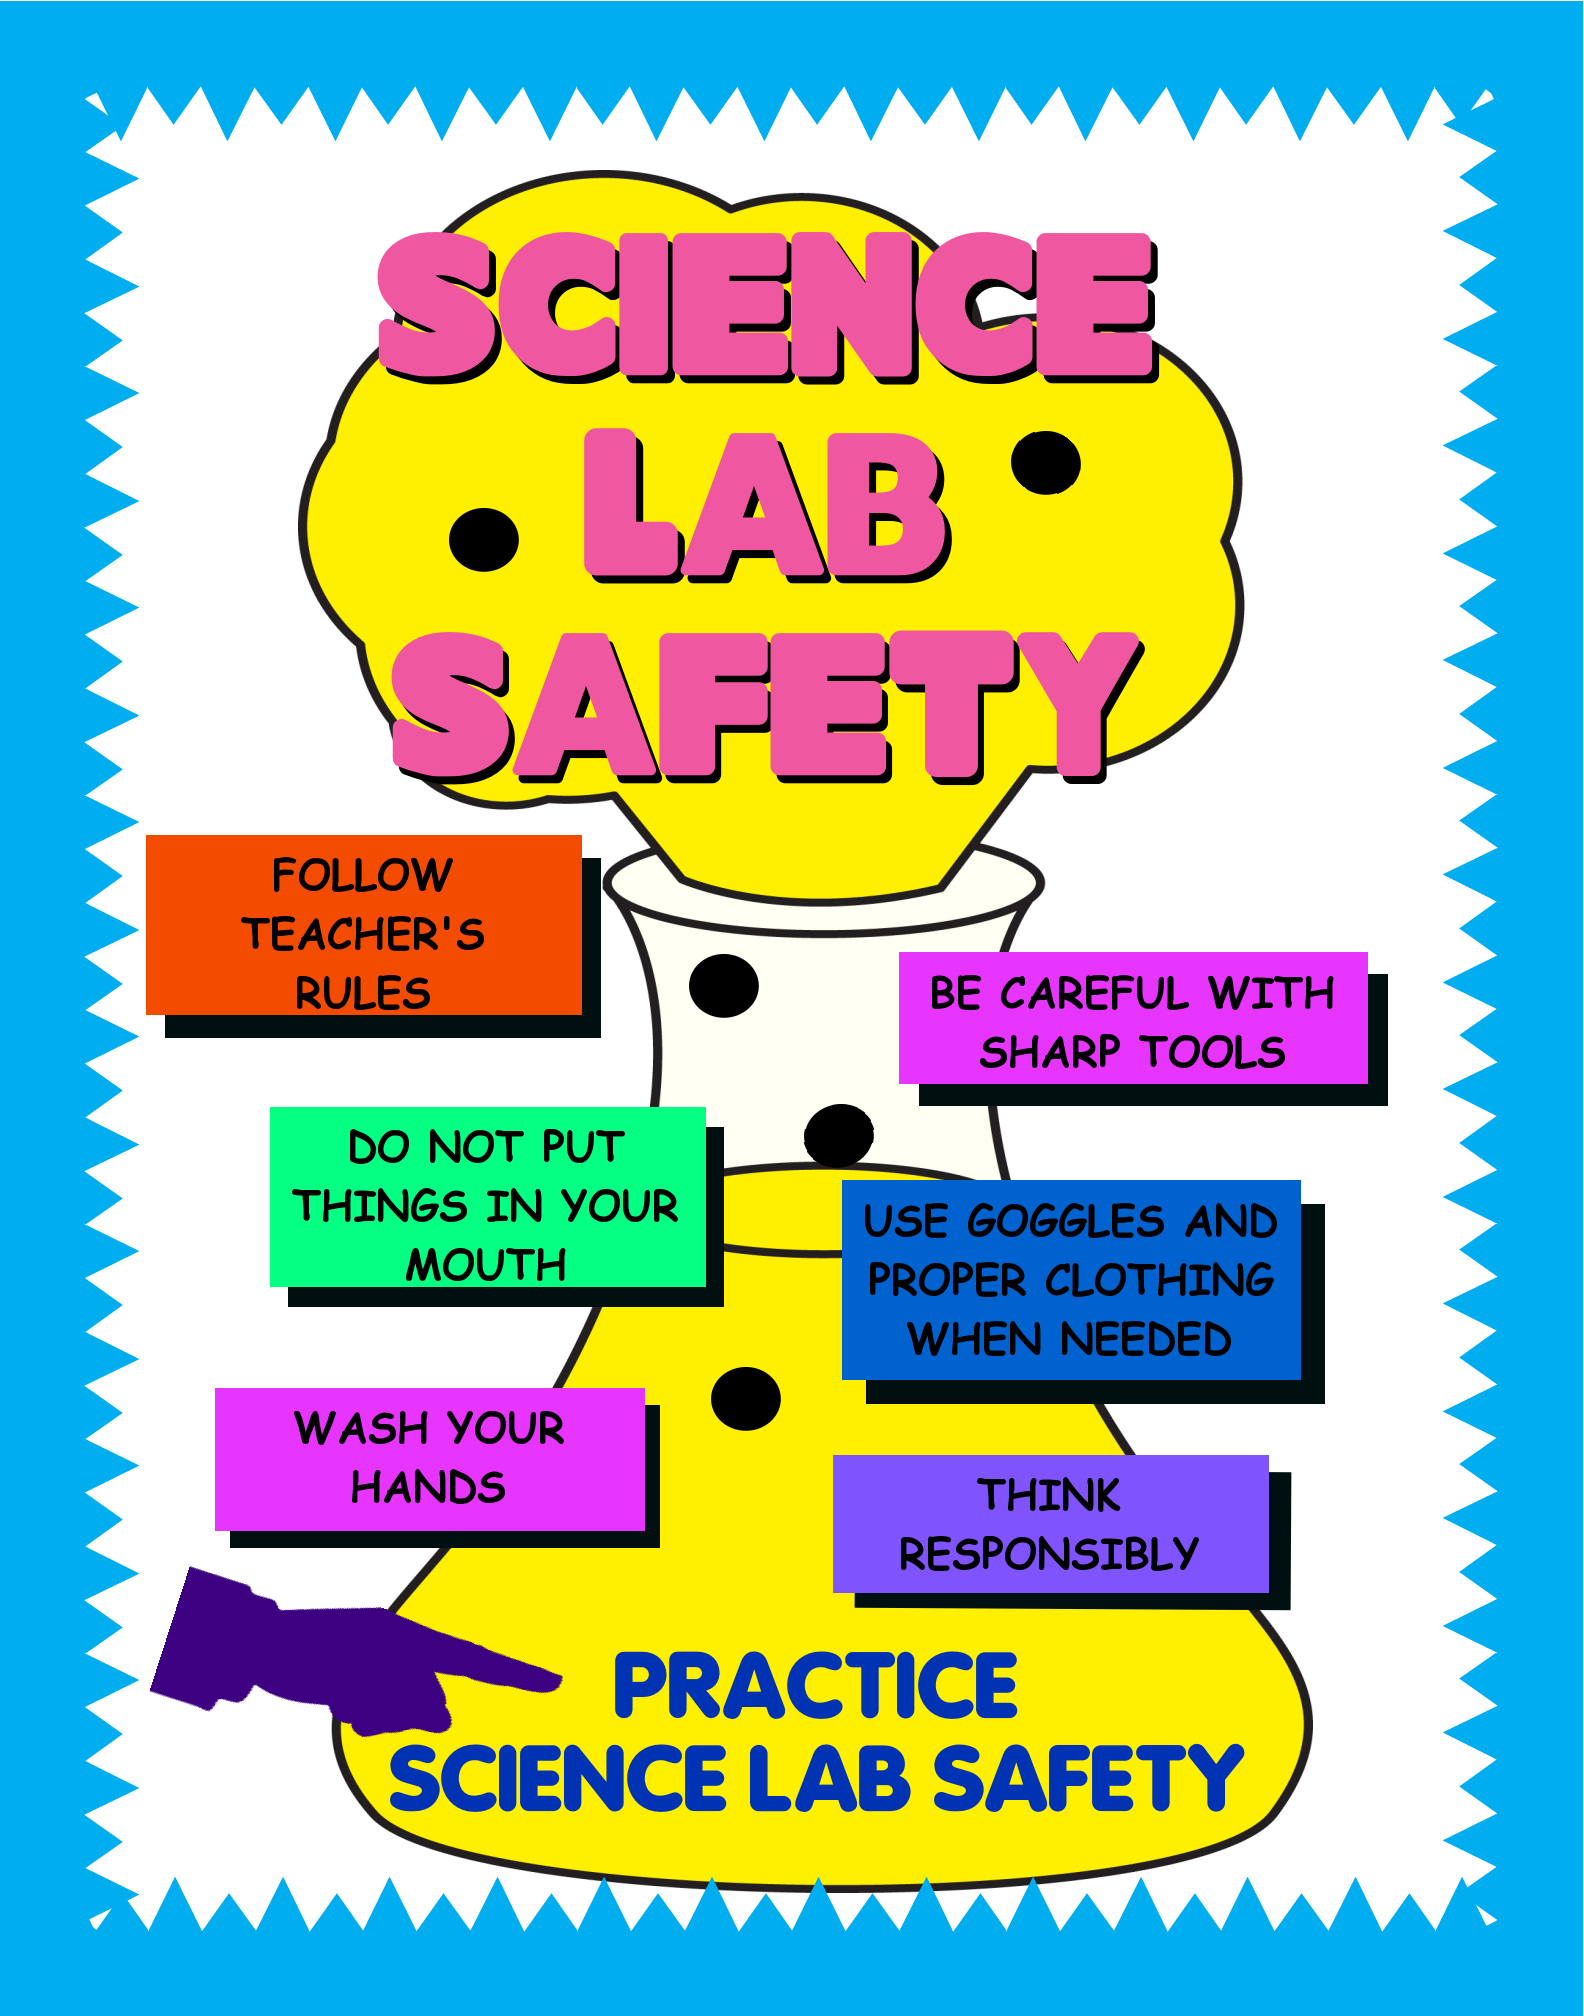 Science Lab Safety is very important Poster Ideas